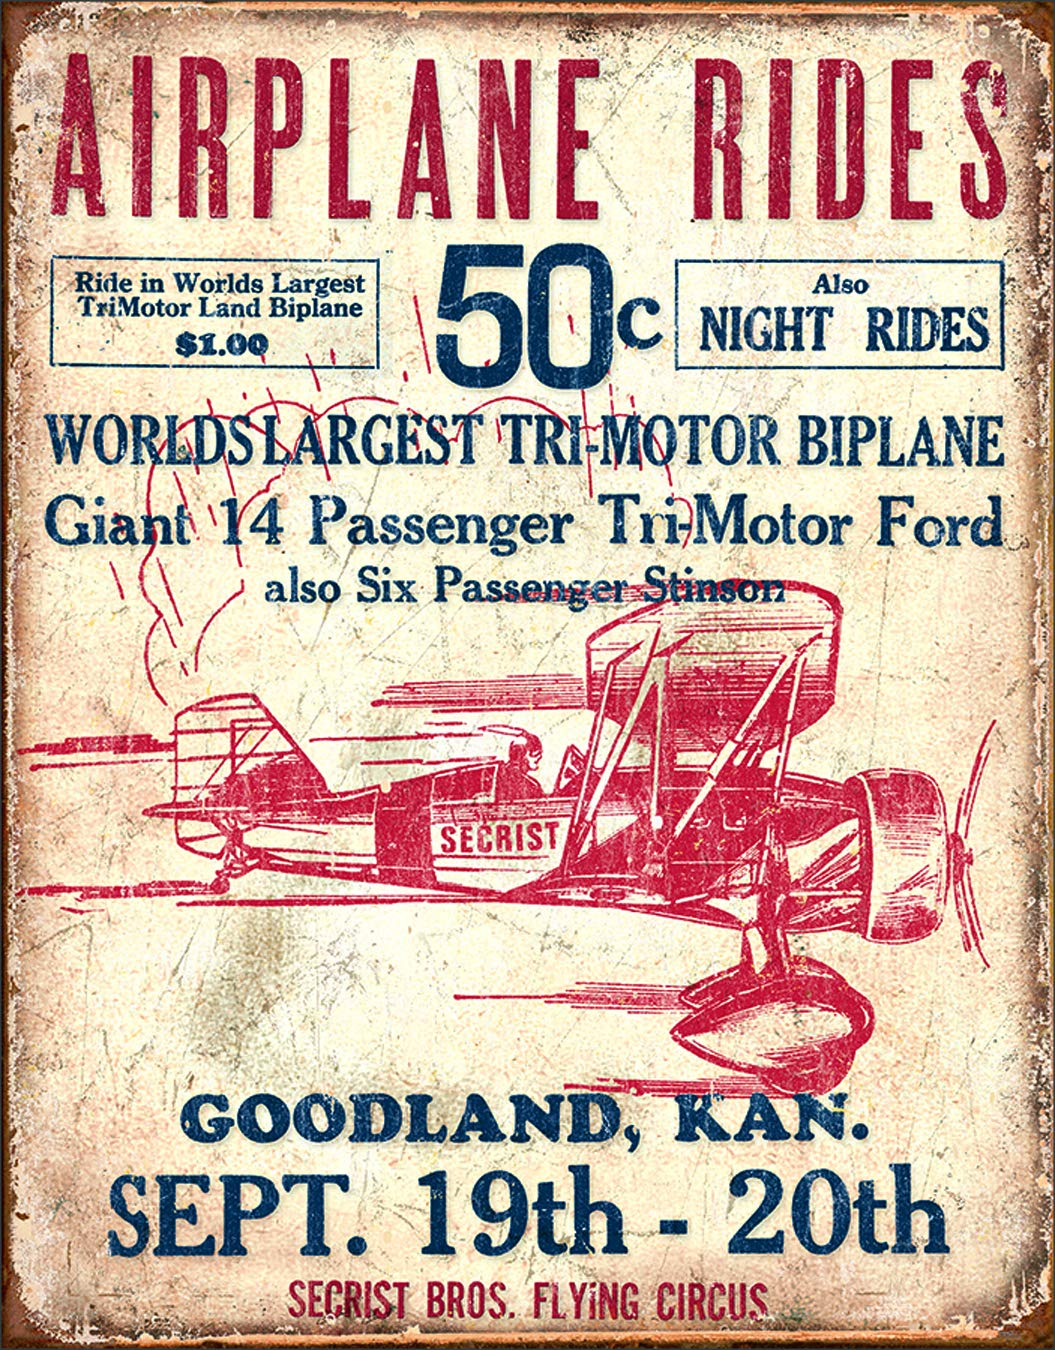 Desperate Enterprises Secrist Flying Circus Tin Sign 12 5 W X 16 H Buy Online In Burkina Faso At Desertcart Productid 22987470 Desperate enterprises has been in business for over 20 years as the leading producer of nostalgic. desertcart